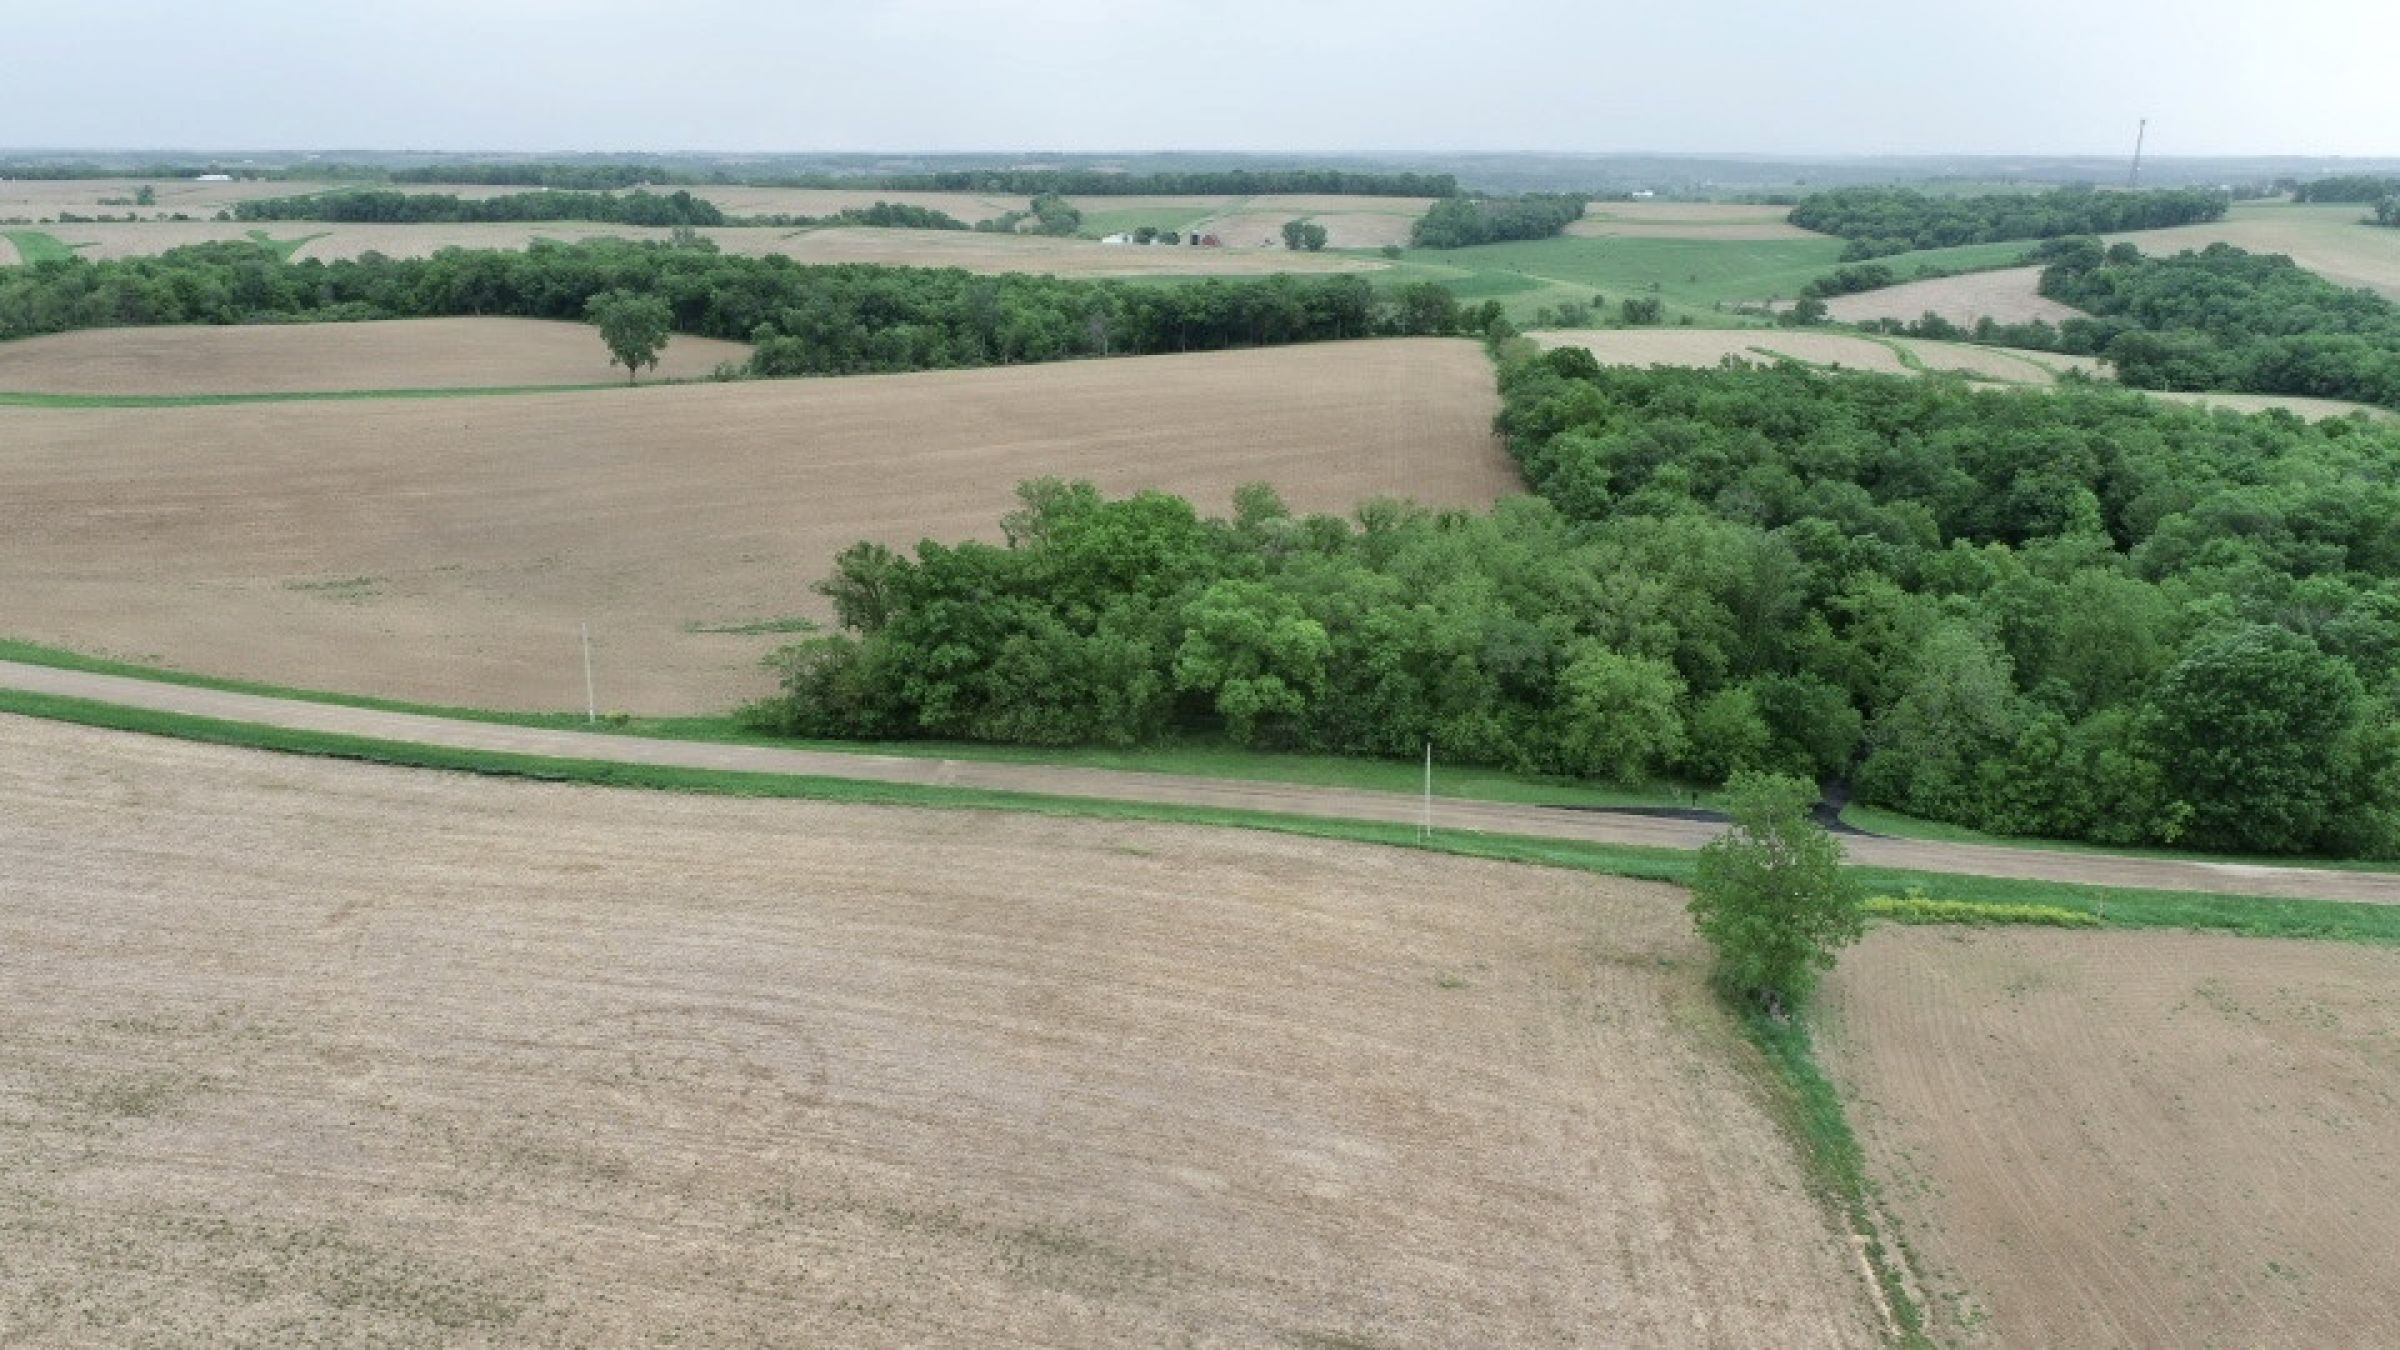 land-lafayette-county-wisconsin-1-acres-listing-number-15559-1-2021-05-28-184445.jpg